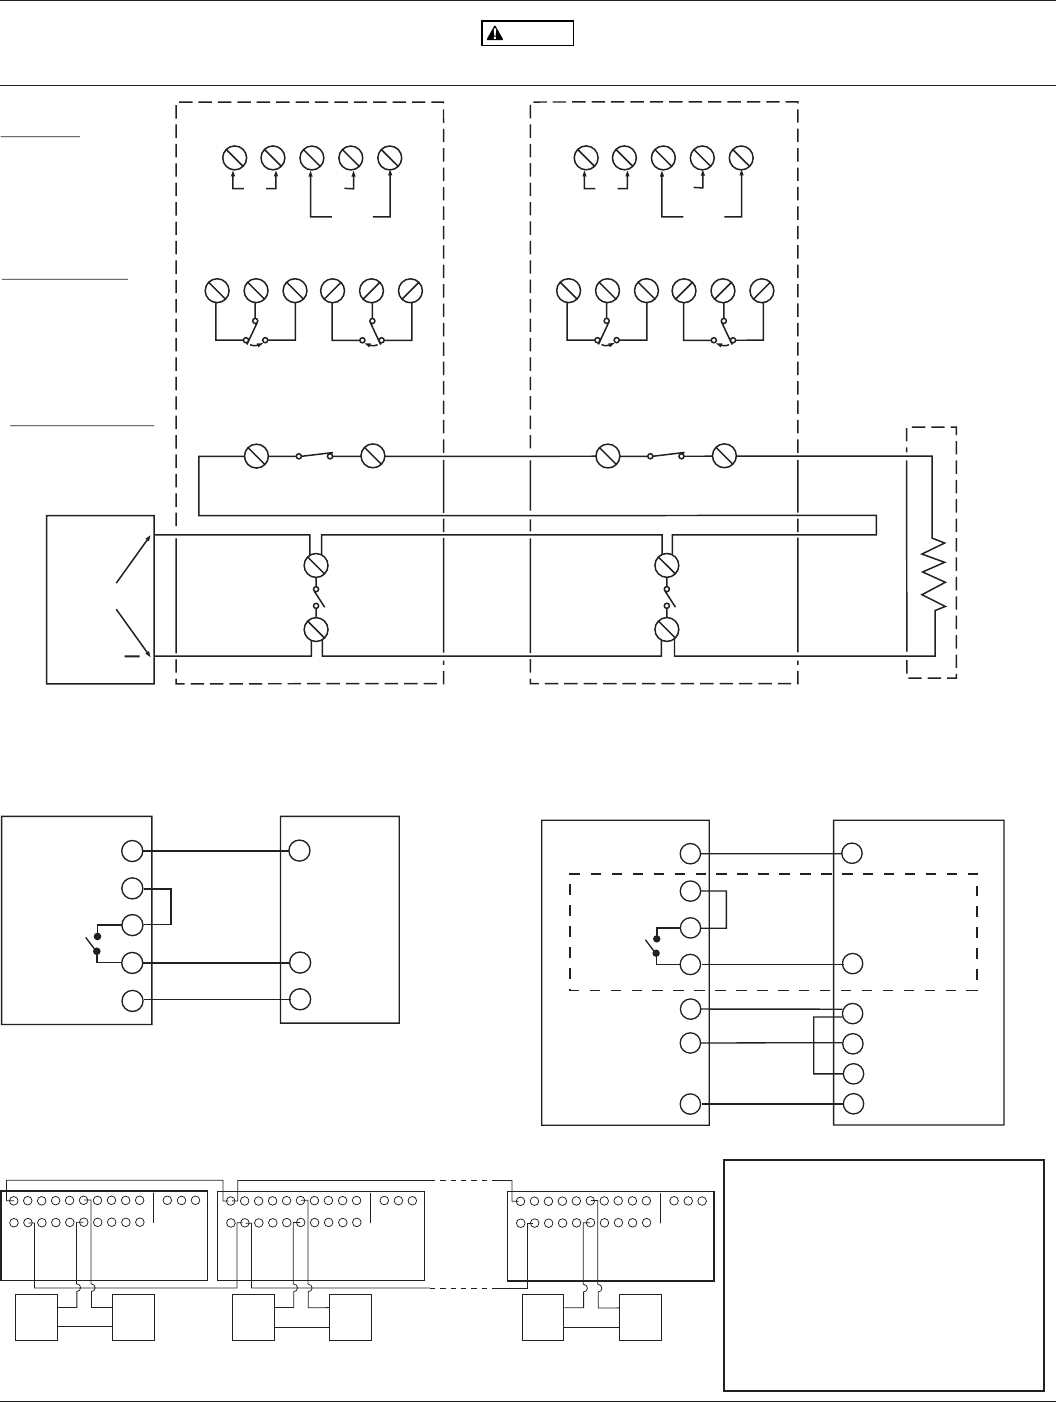 b74b230e 8564 44d2 8295 09df0d442456 bg6 page 6 of system sensor smoke alarm dh100acdclp user guide rts451 wiring diagram at webbmarketing.co